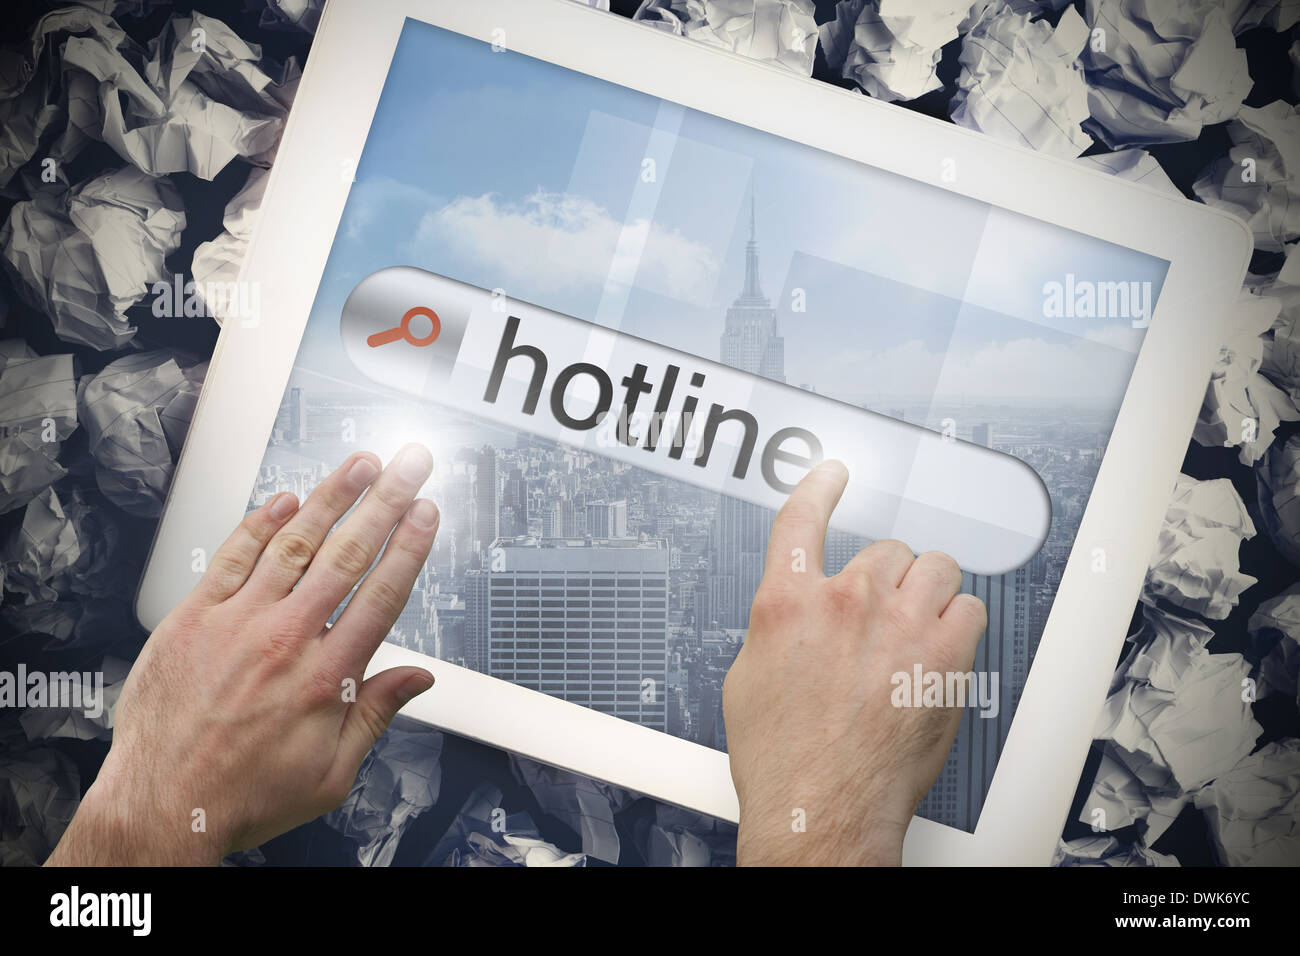 Hand touching hotline on search bar on tablet screen - Stock Image